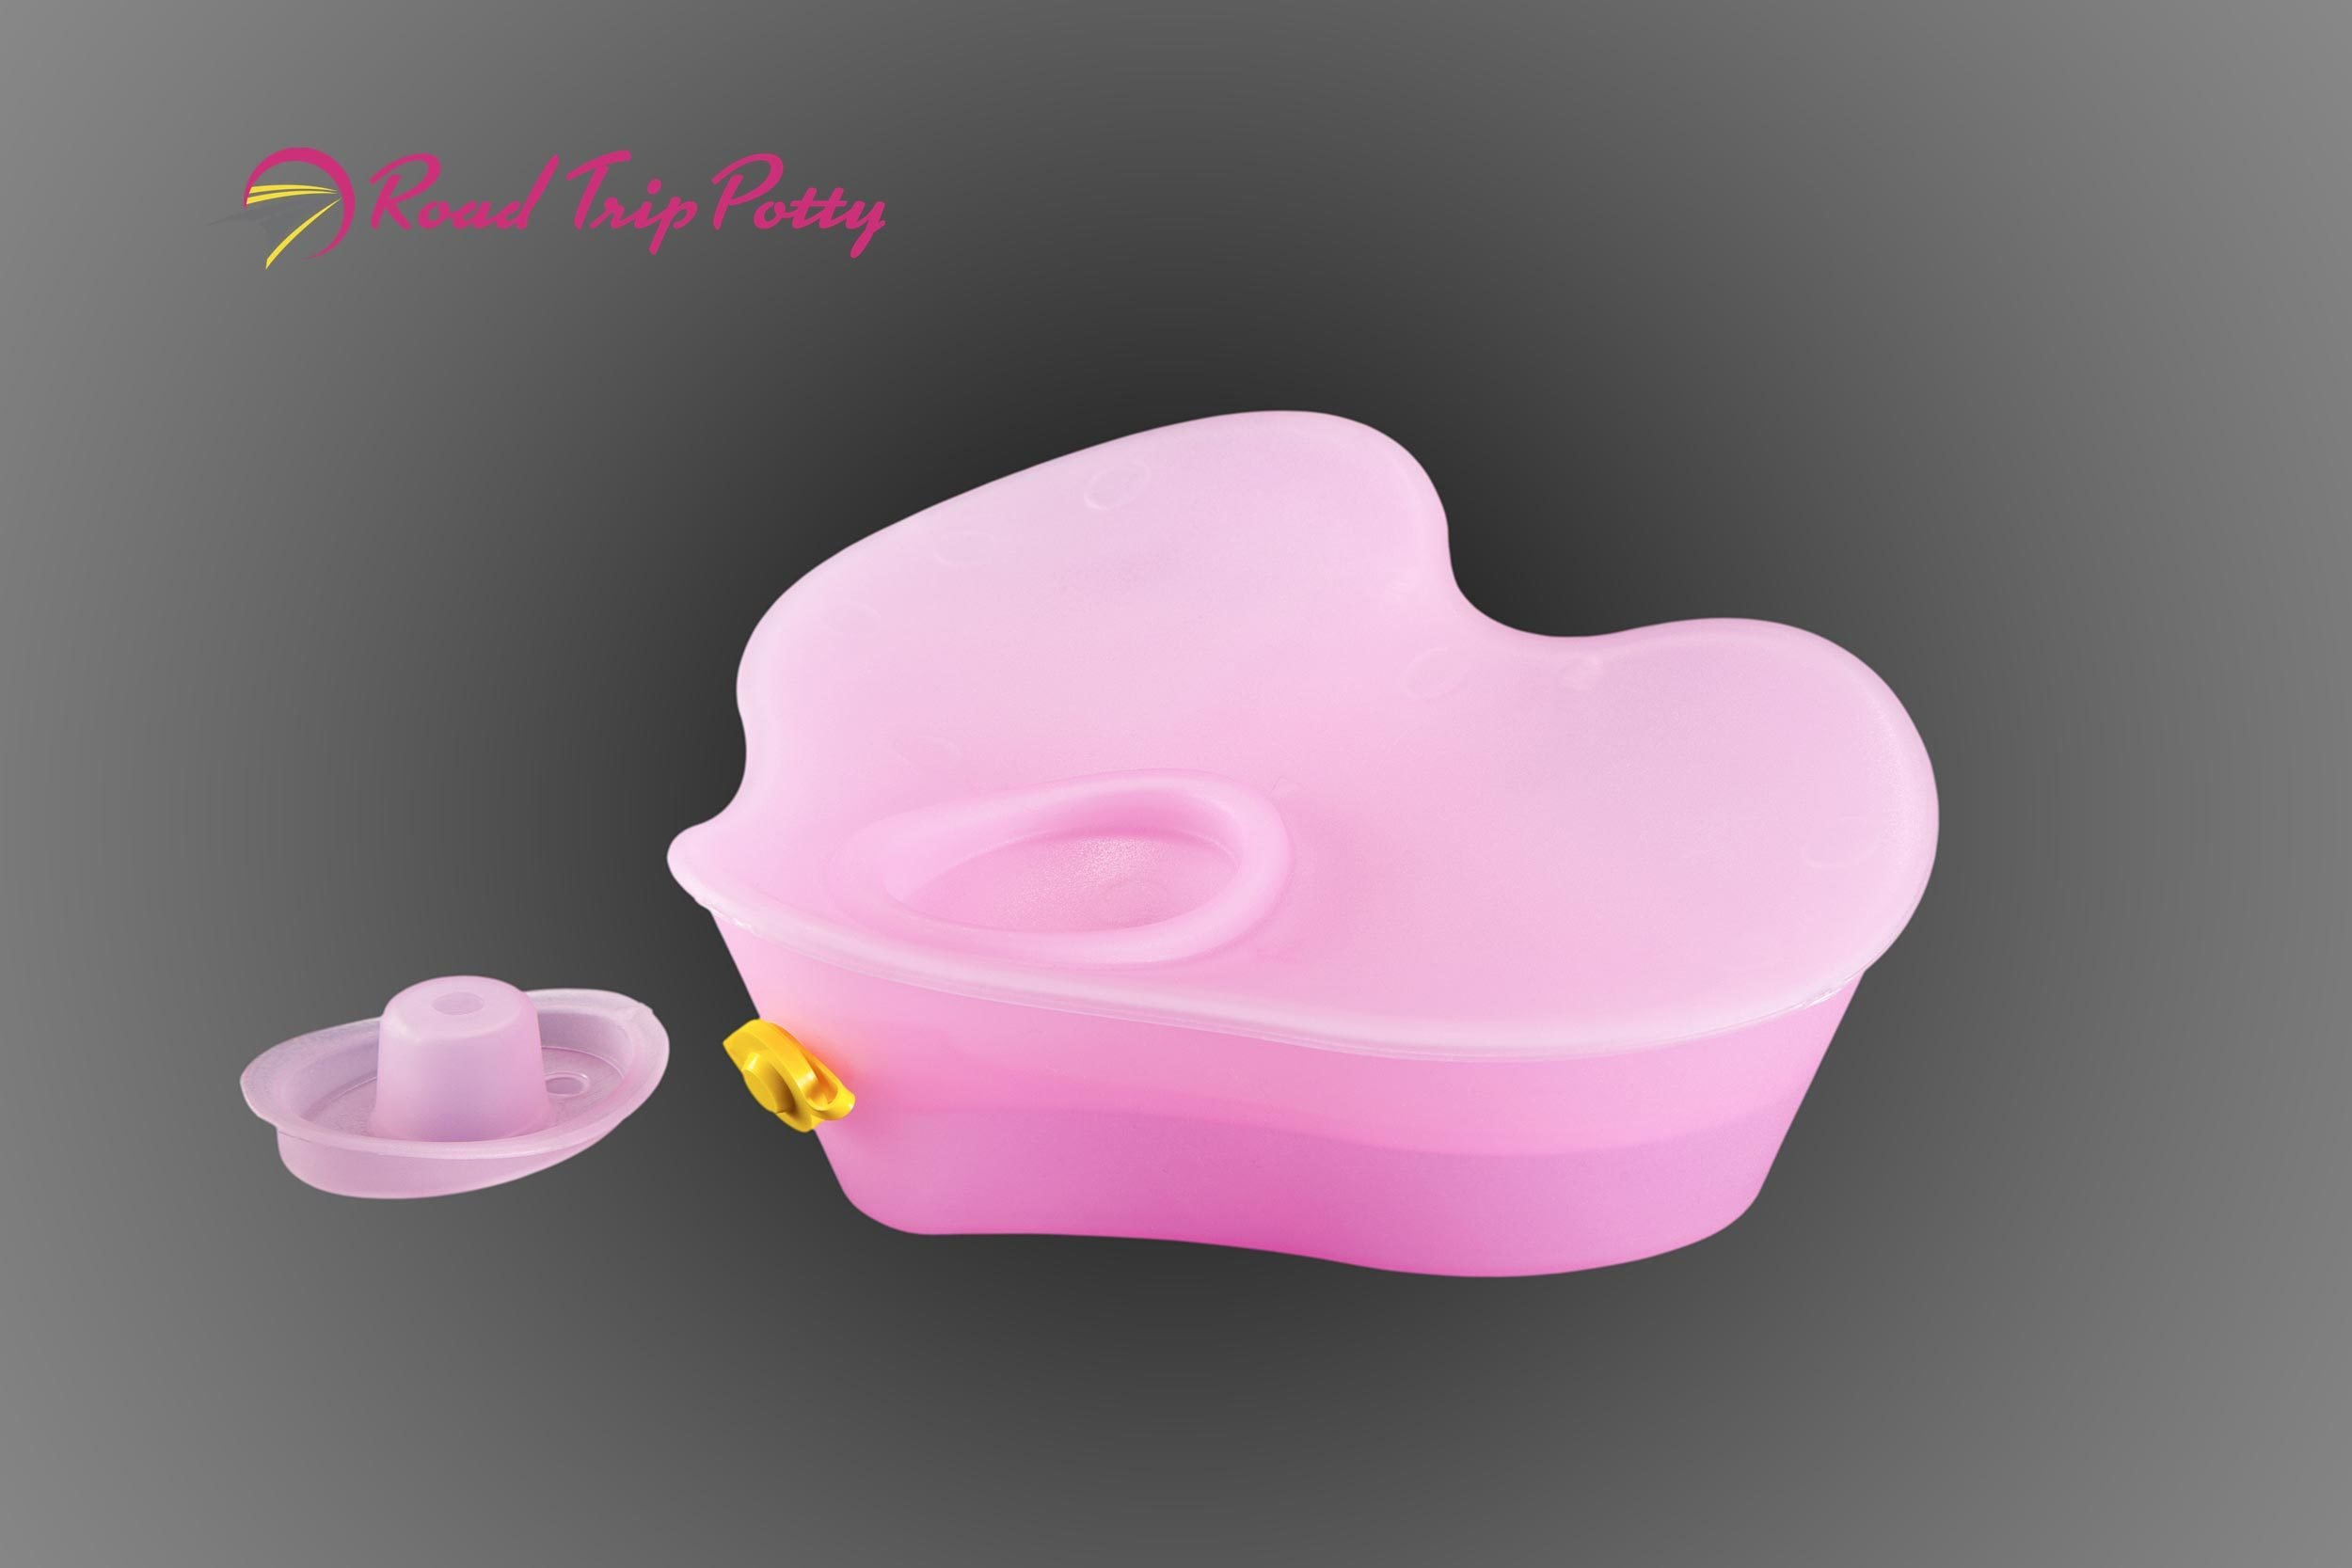 Road Trip Potty Portable Female Urinal